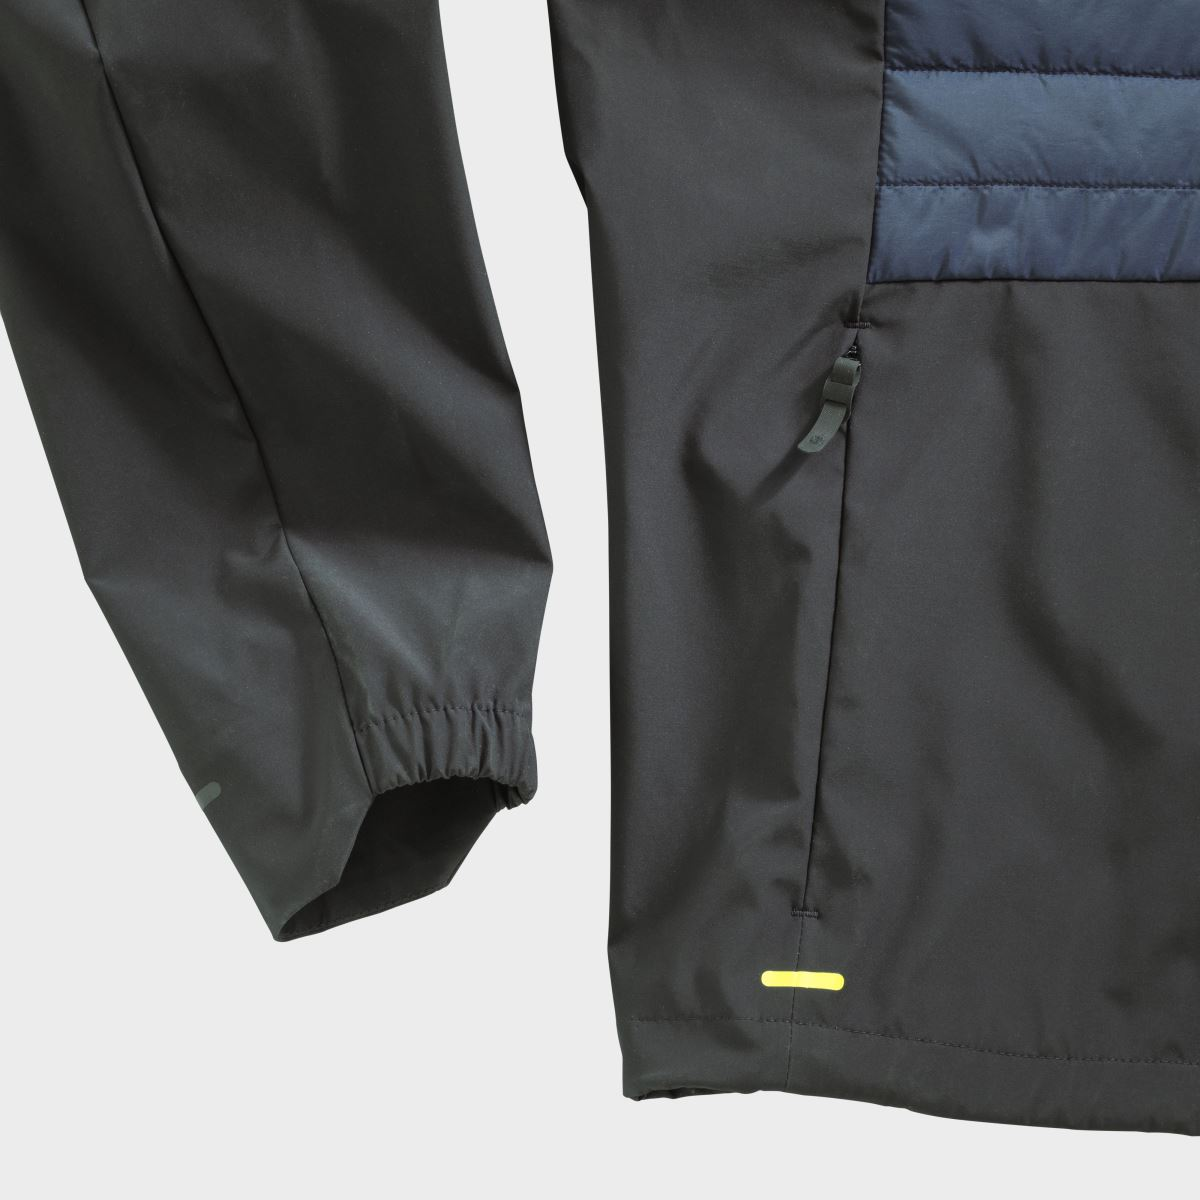 REMOTE HYBRID JACKET - CASUAL CLOTHING COLLECTION 2020